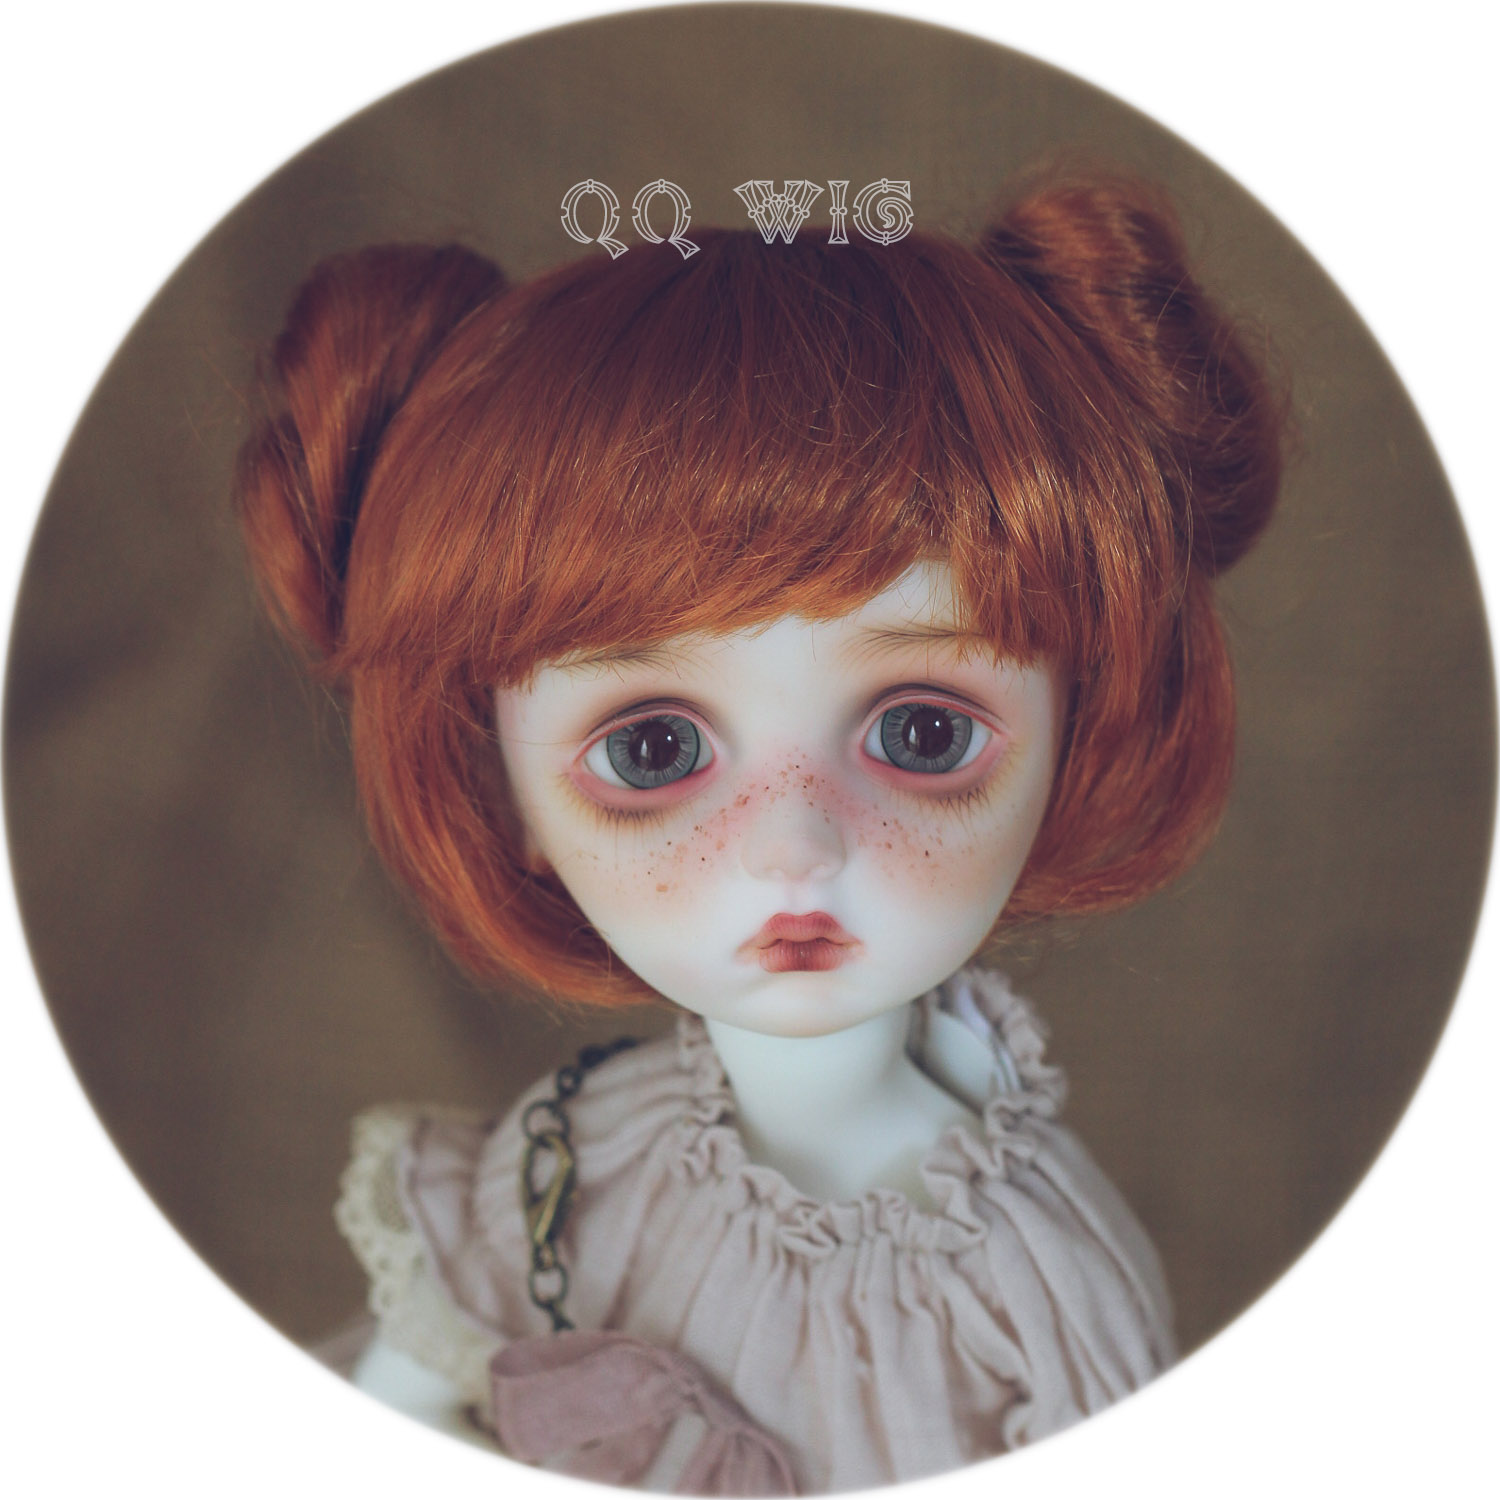 Free Shipping New Arrival 1/4 Bjd Wig Msd Sd Yosd Lovely Fashion Mohair BJD Hair Wig 1 3 1 4 1 6 1 8 1 12 bjd wigs fashion light gray fur wig bjd sd short wig for diy dollfie